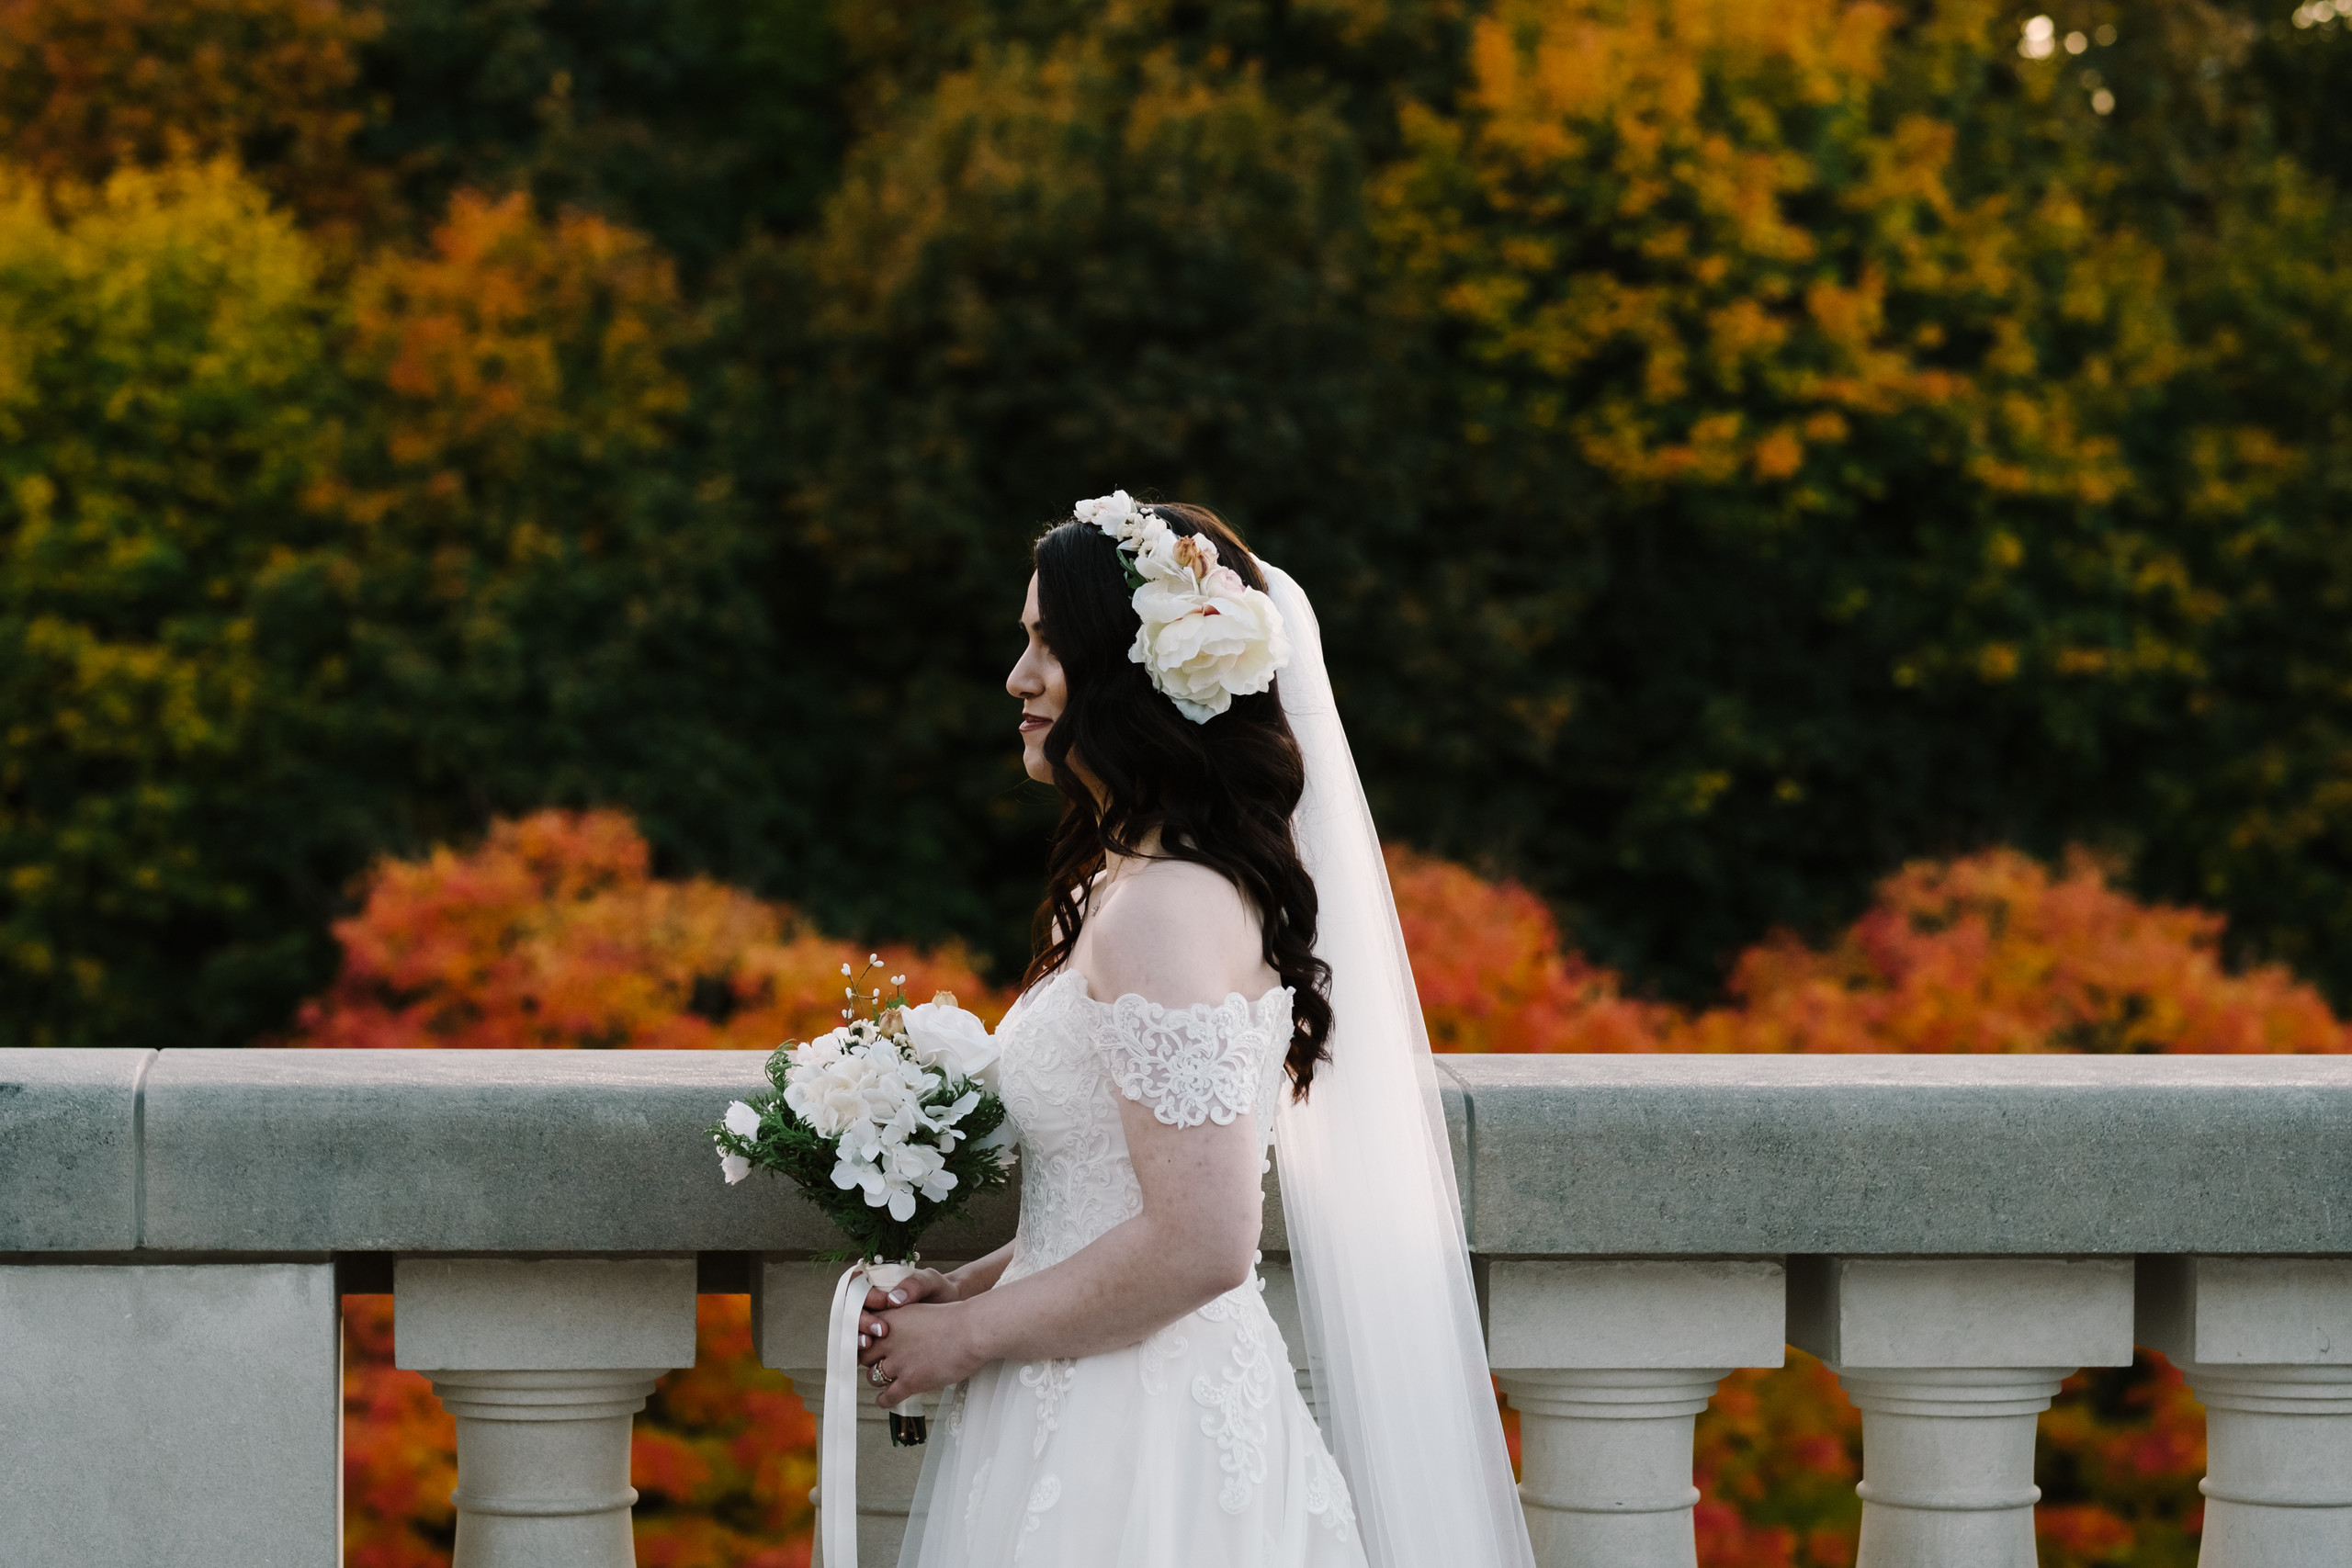 Fall wedding in Ottawa at the Château Laurier. Photo of bride with her veil and bouquet posing with the Fall foliage in the background. Photo by Melanie Mathieu Photography.